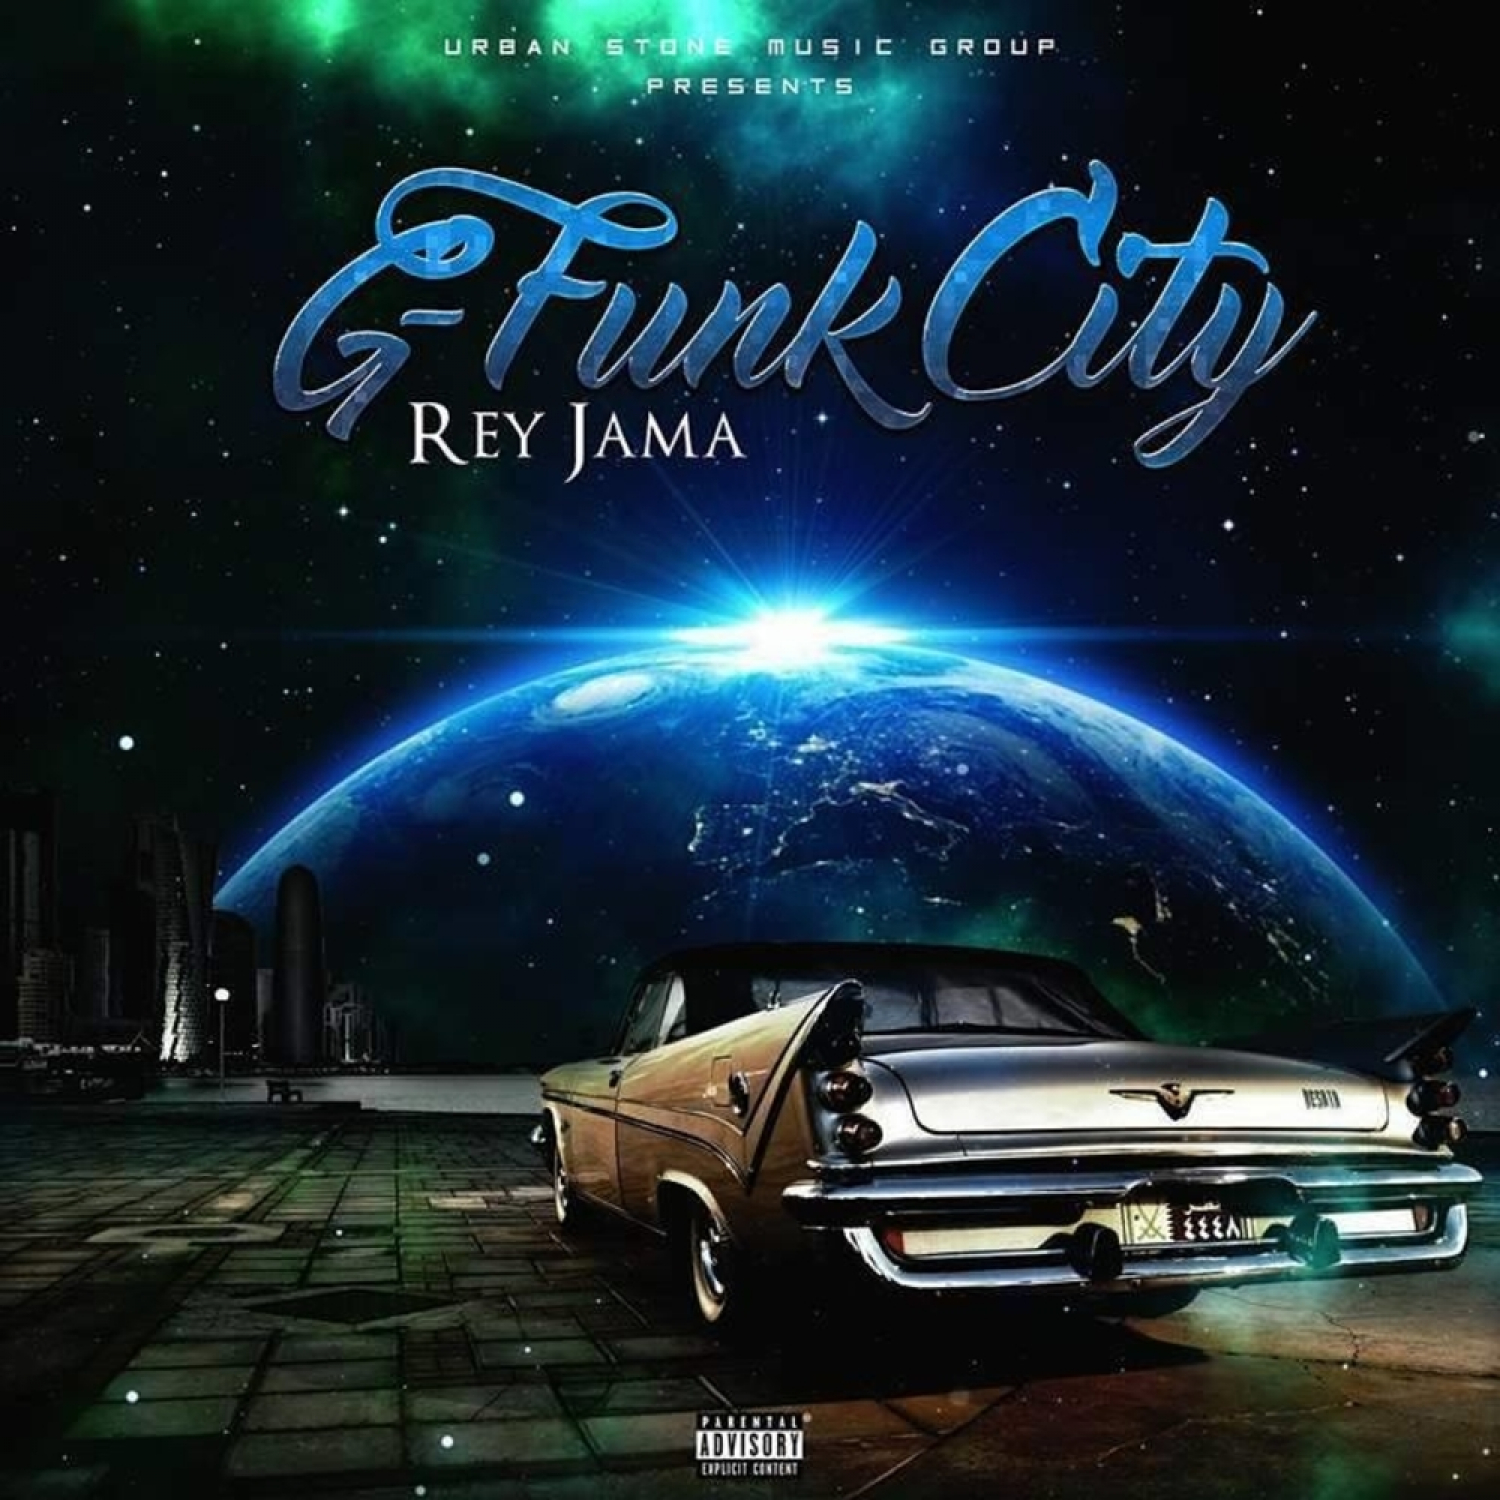 Rey Jama & MR.WHO?? - G-Funk City (feat. MR.WHO??) (Original Mix)